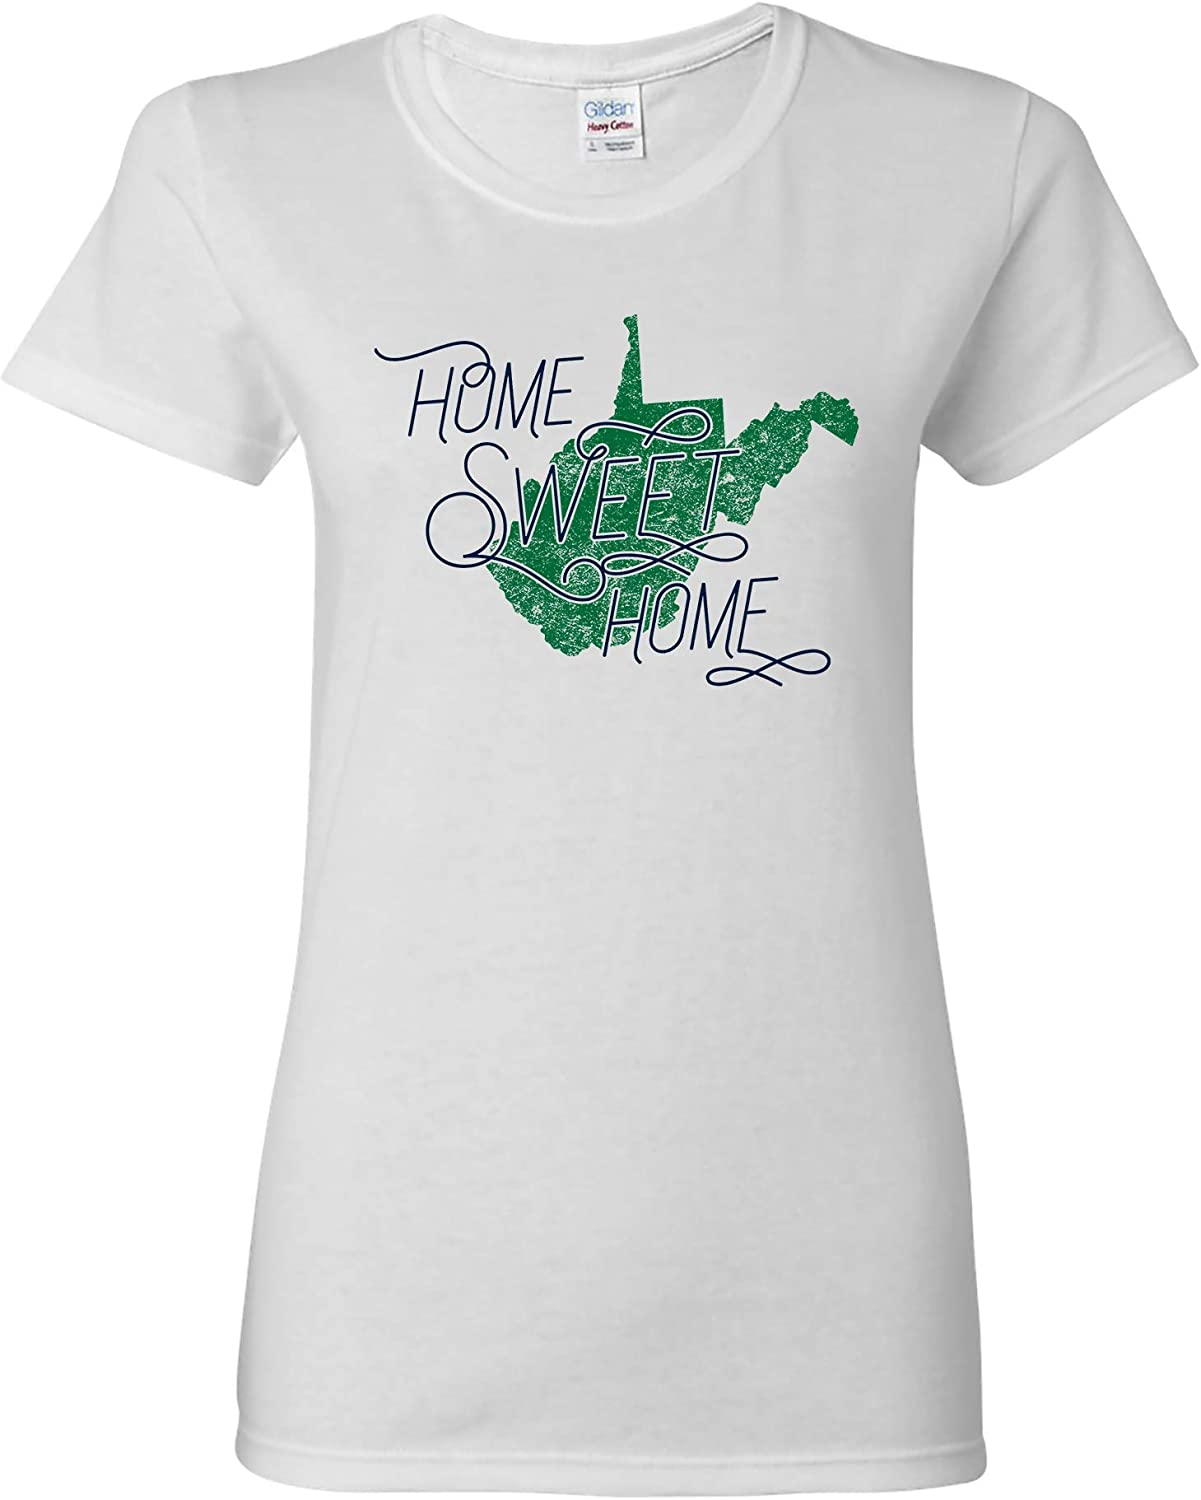 UGP Campus Apparel West Virginia Home Sweet Home - State America Pride Womens T Shirt - Small - White